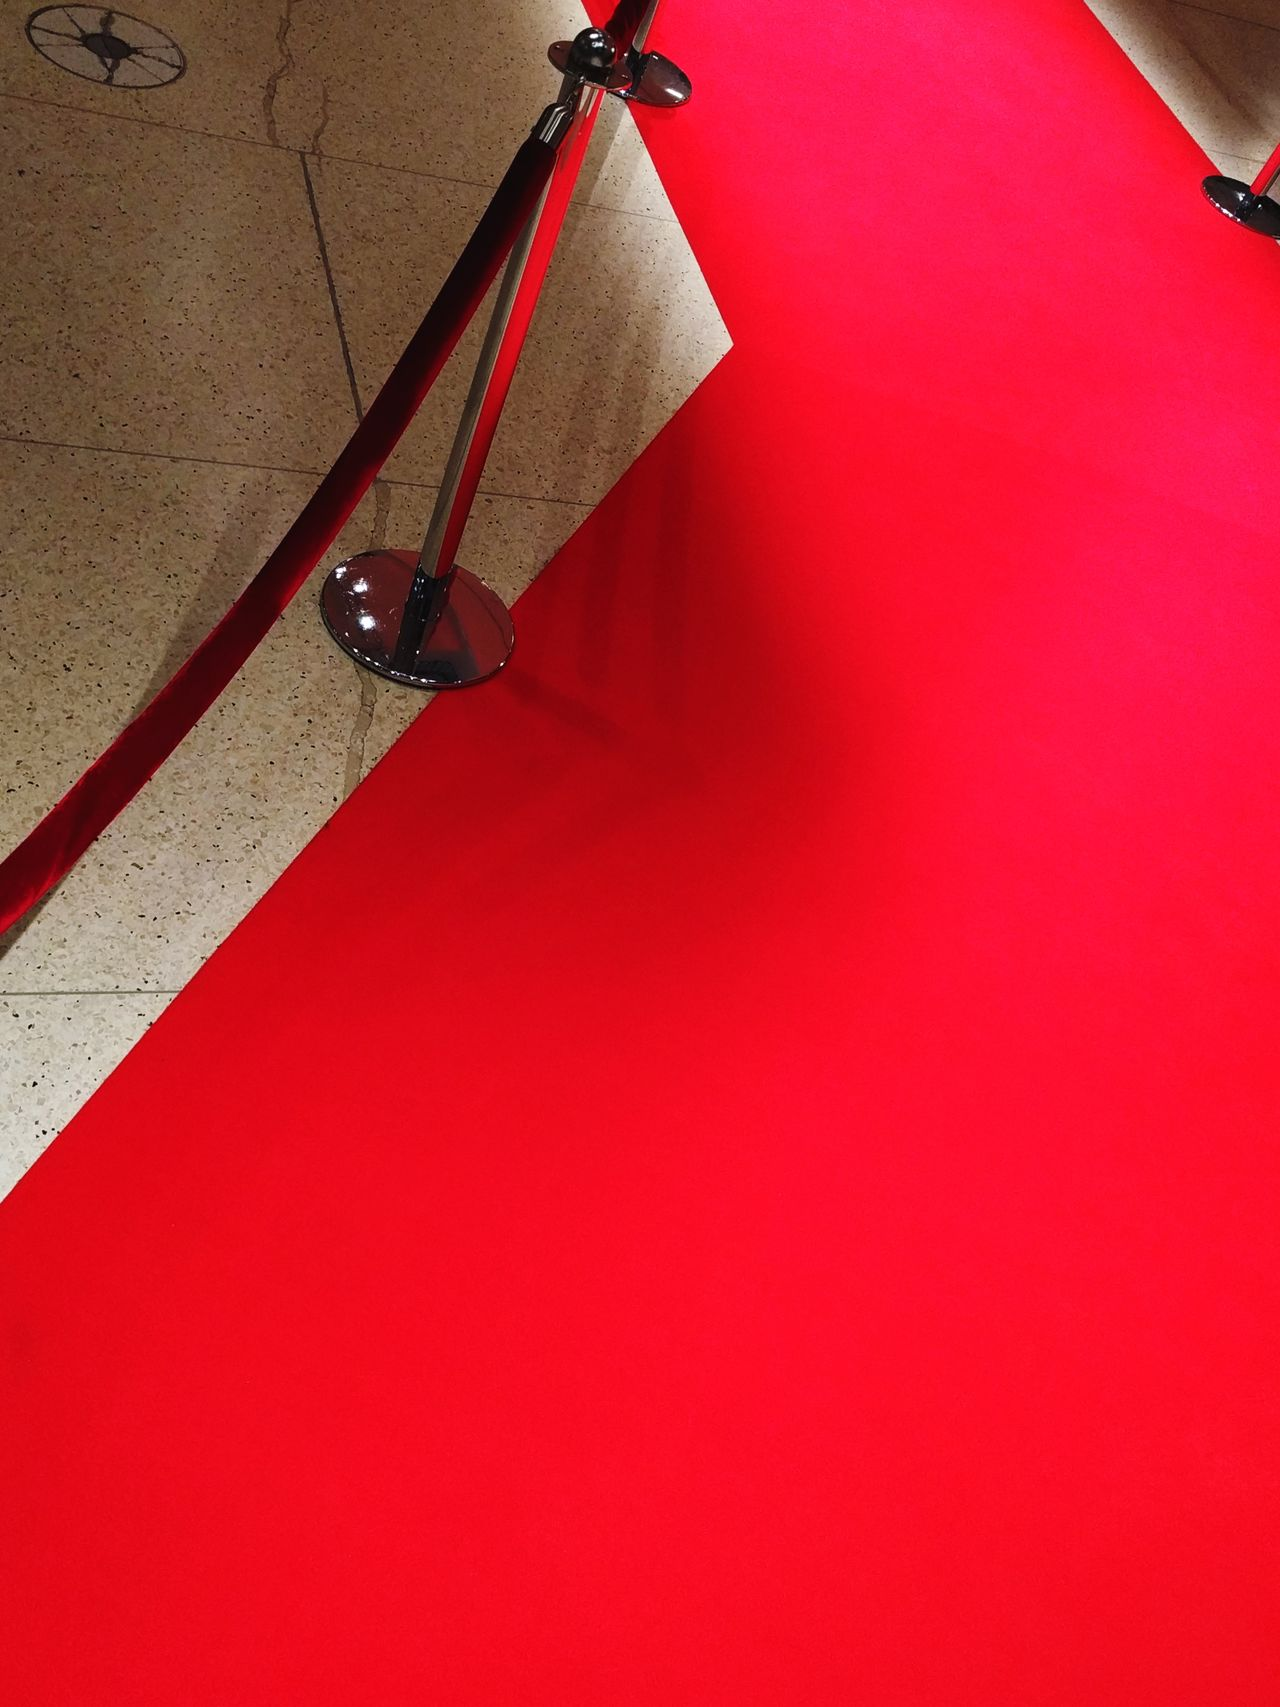 Red Red Background Indoors  No People Close-up Day Backgrounds Red Carpet Abstract Indoors  Red